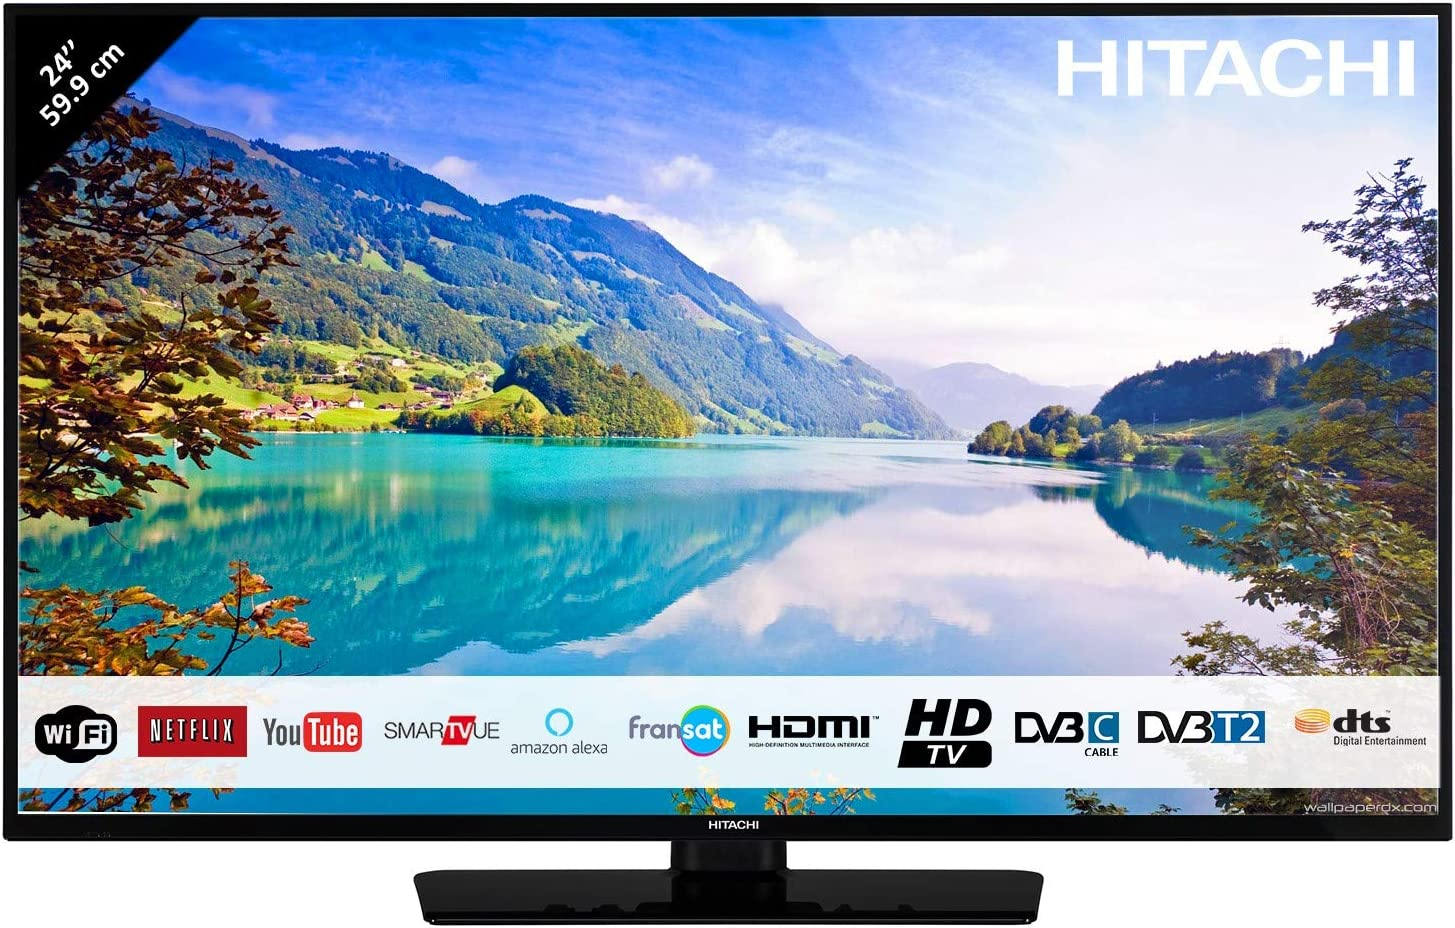 Hitachi TV LED 24HE2001 24